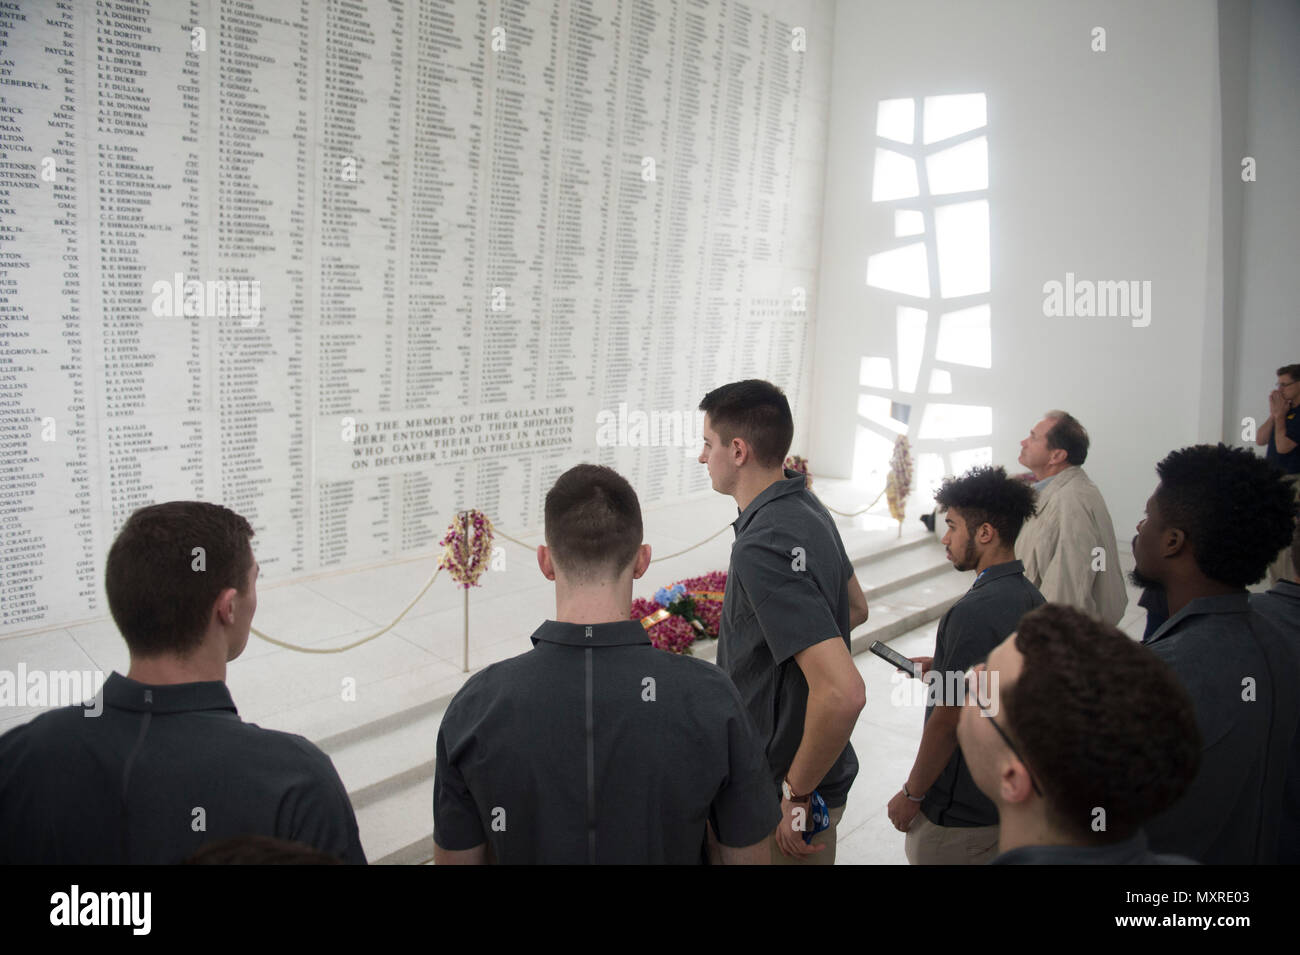 161204-N-ZK021-046 PEARL HARBOR (Dec. 4, 2016) Players from Princeton University view the names of Sailors who lost their lives during the attack on Pearl Harbor during a visit on the USS Arizona Memorial. The team is scheduled to participate in the FOX Sports Pearl Harbor Invitational on Dec. 6 and 7 along with players from Seton Hall University, University of California, and University of Hawaii. Dec. 7, 2016, marks the 75th anniversary of the attacks on Pearl Harbor and Oahu. As a Pacific nation, the U.S. is committed to continue its responsibility of protecting the Pacific sea-lanes, advan - Stock Image